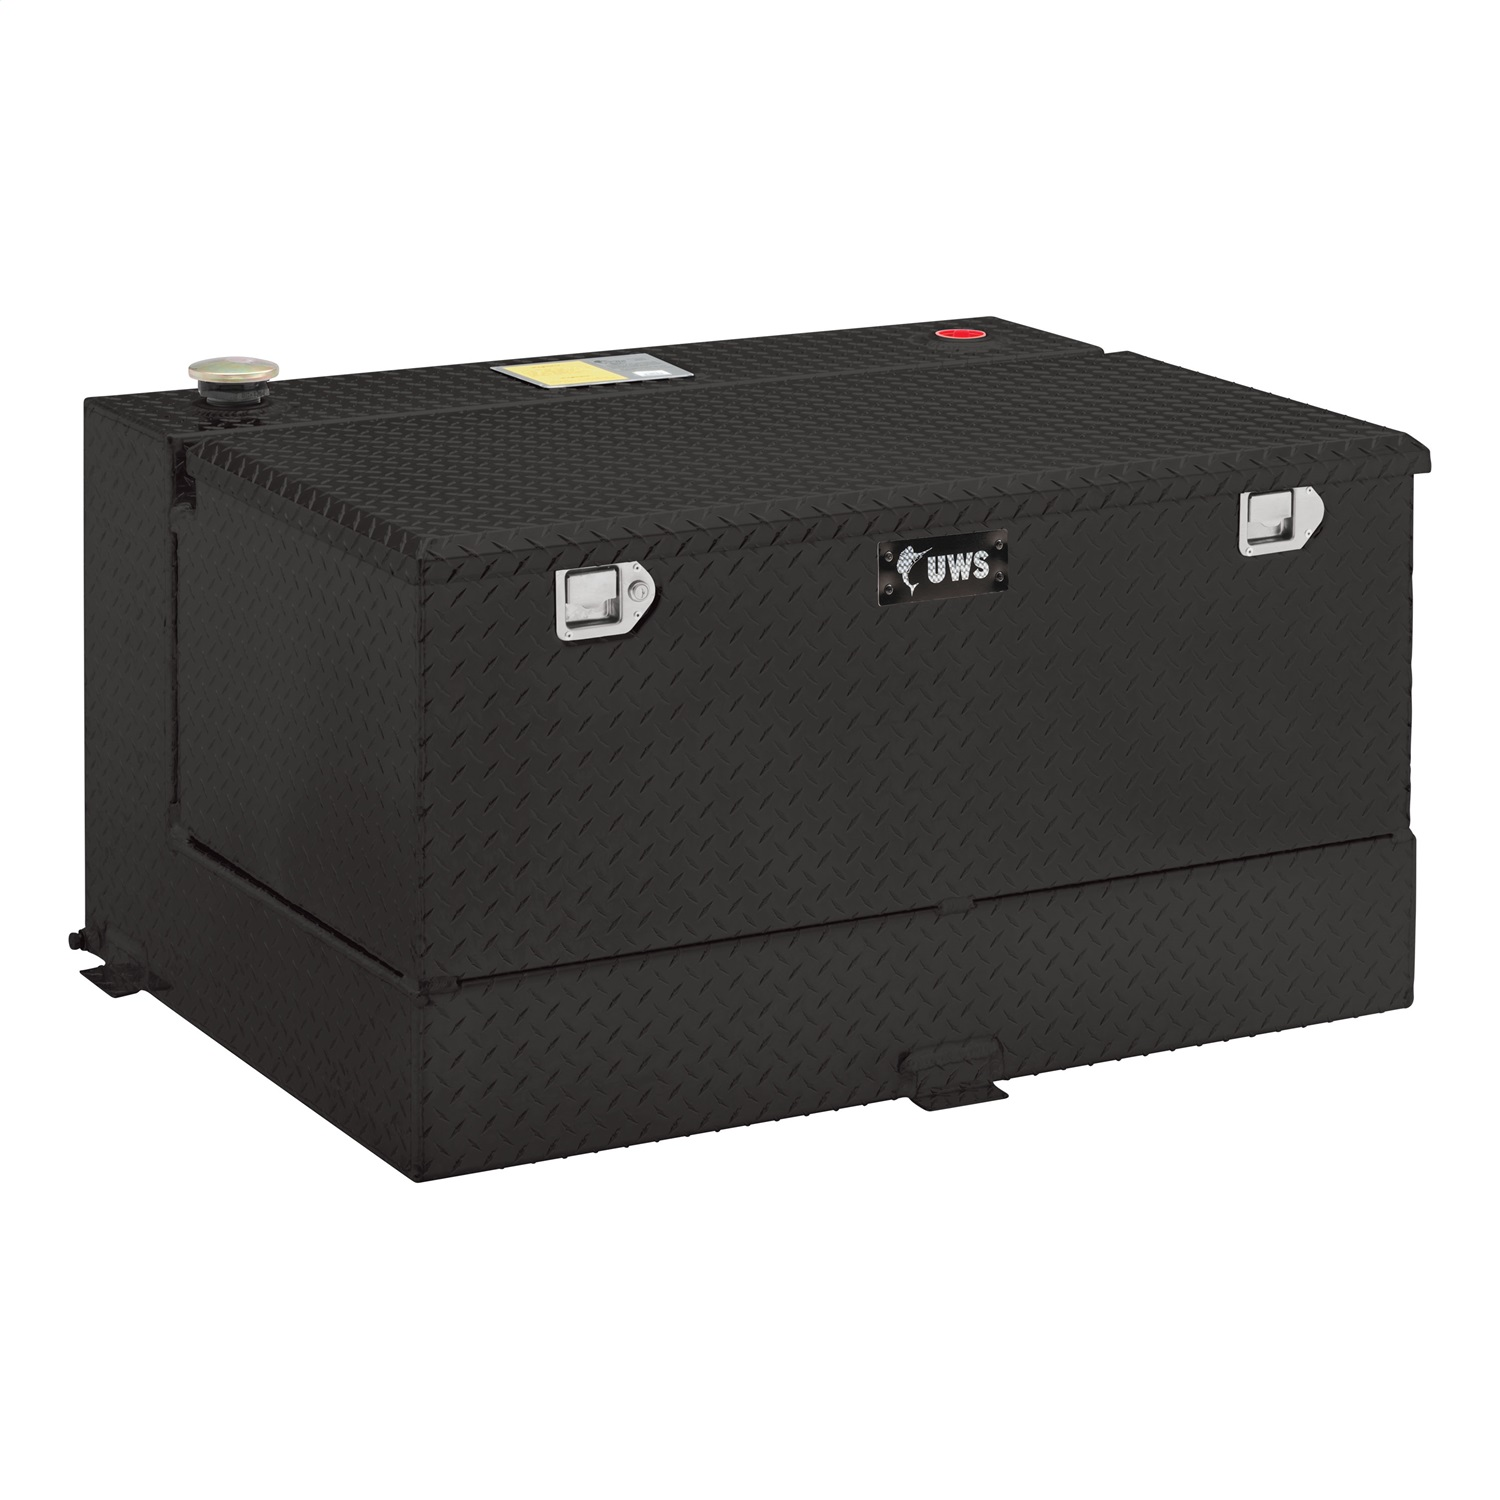 Combination Liquid Transfer Tank/Tool Box, Volume 45 Gallons, L 54 in. x W 18 in. x H 12 in., Black